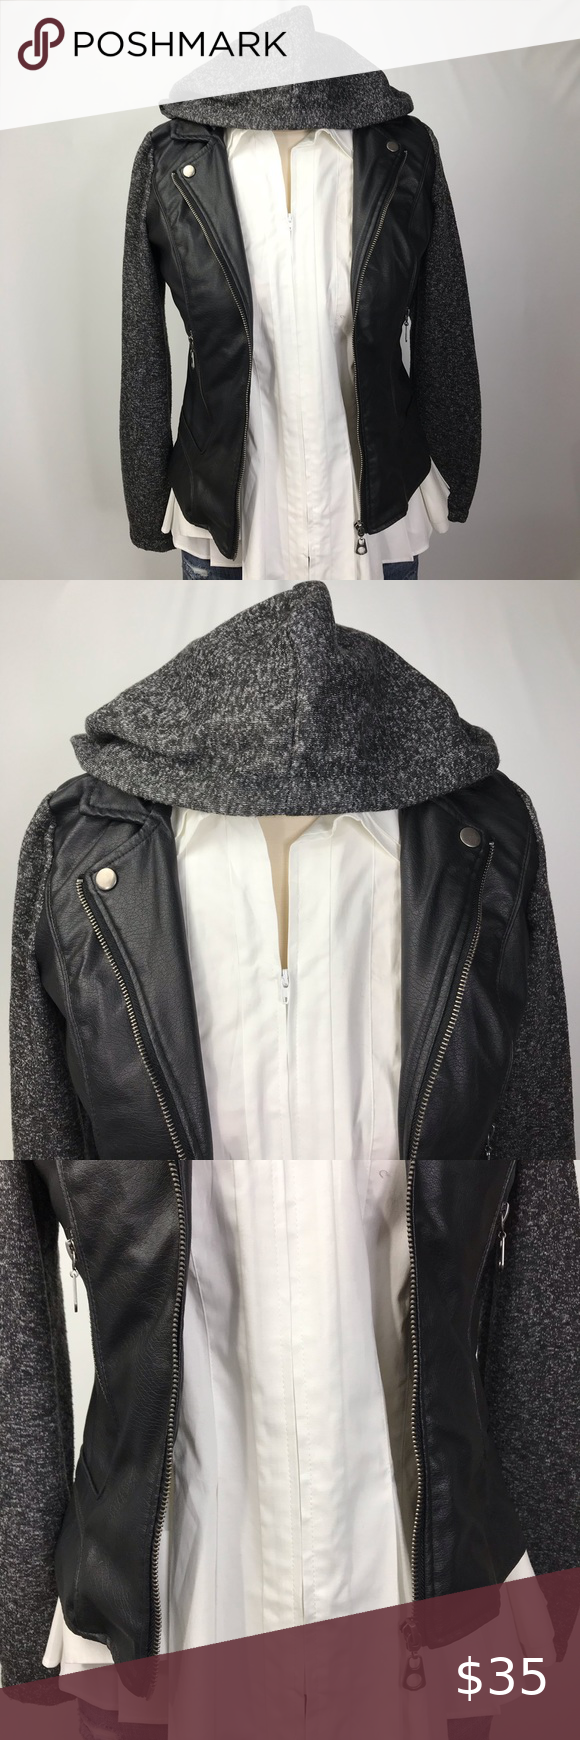 New Look Faux Leather Jacket In The Color Black Of A Faux Leather Biker Vest With The Attached Sleeves And Hood Being A Leather Jacket New Look Jackets Jackets [ 1740 x 580 Pixel ]